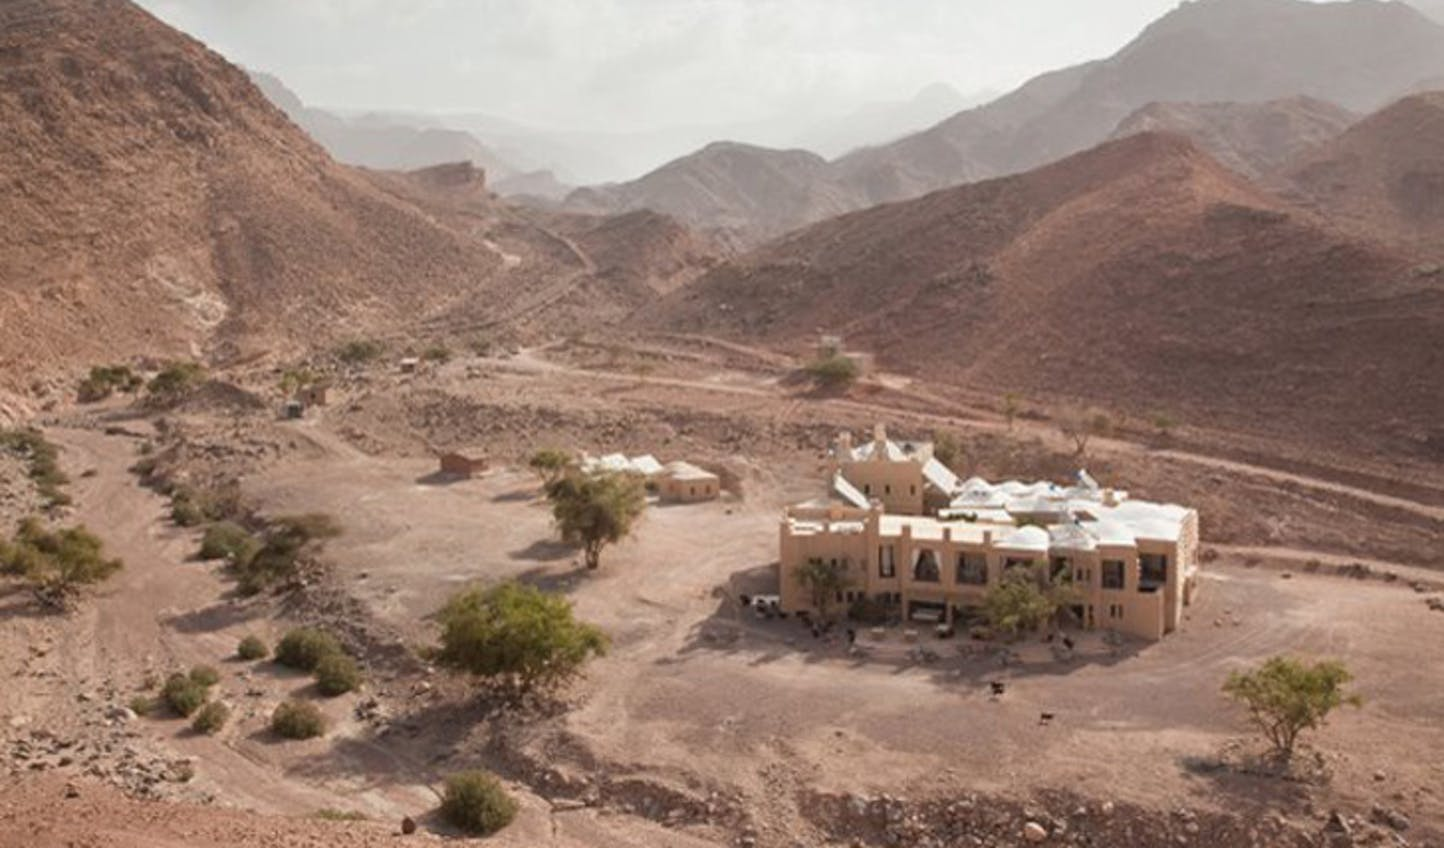 Luxury hotels in Jordan